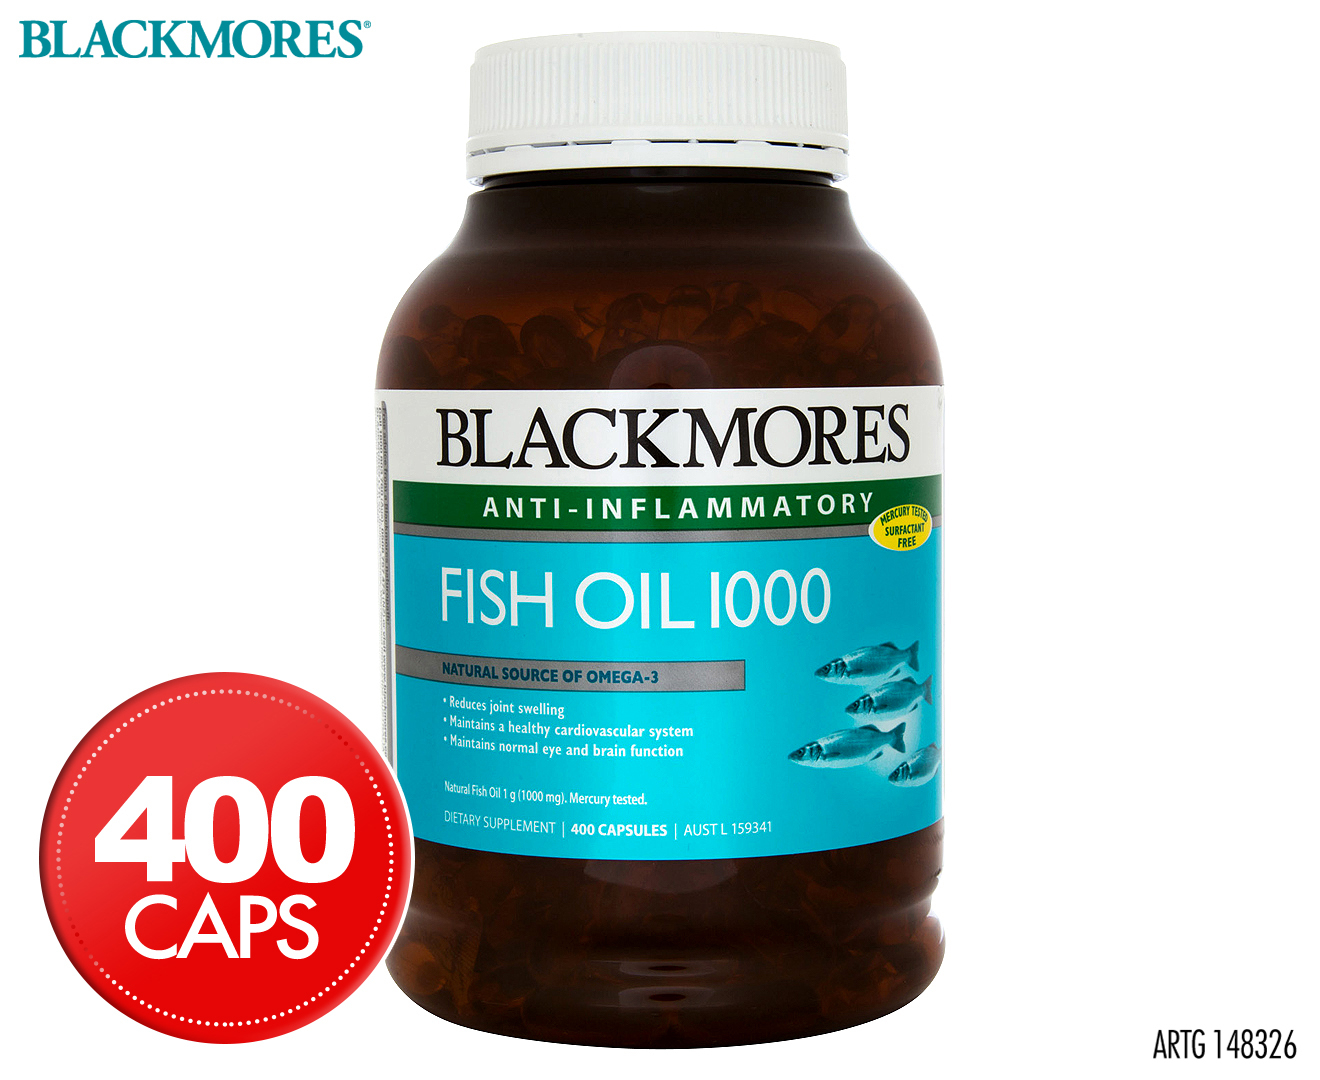 Blackmores anti inflammatory fish oil 1000 400 caps for Best fish oil to reduce inflammation